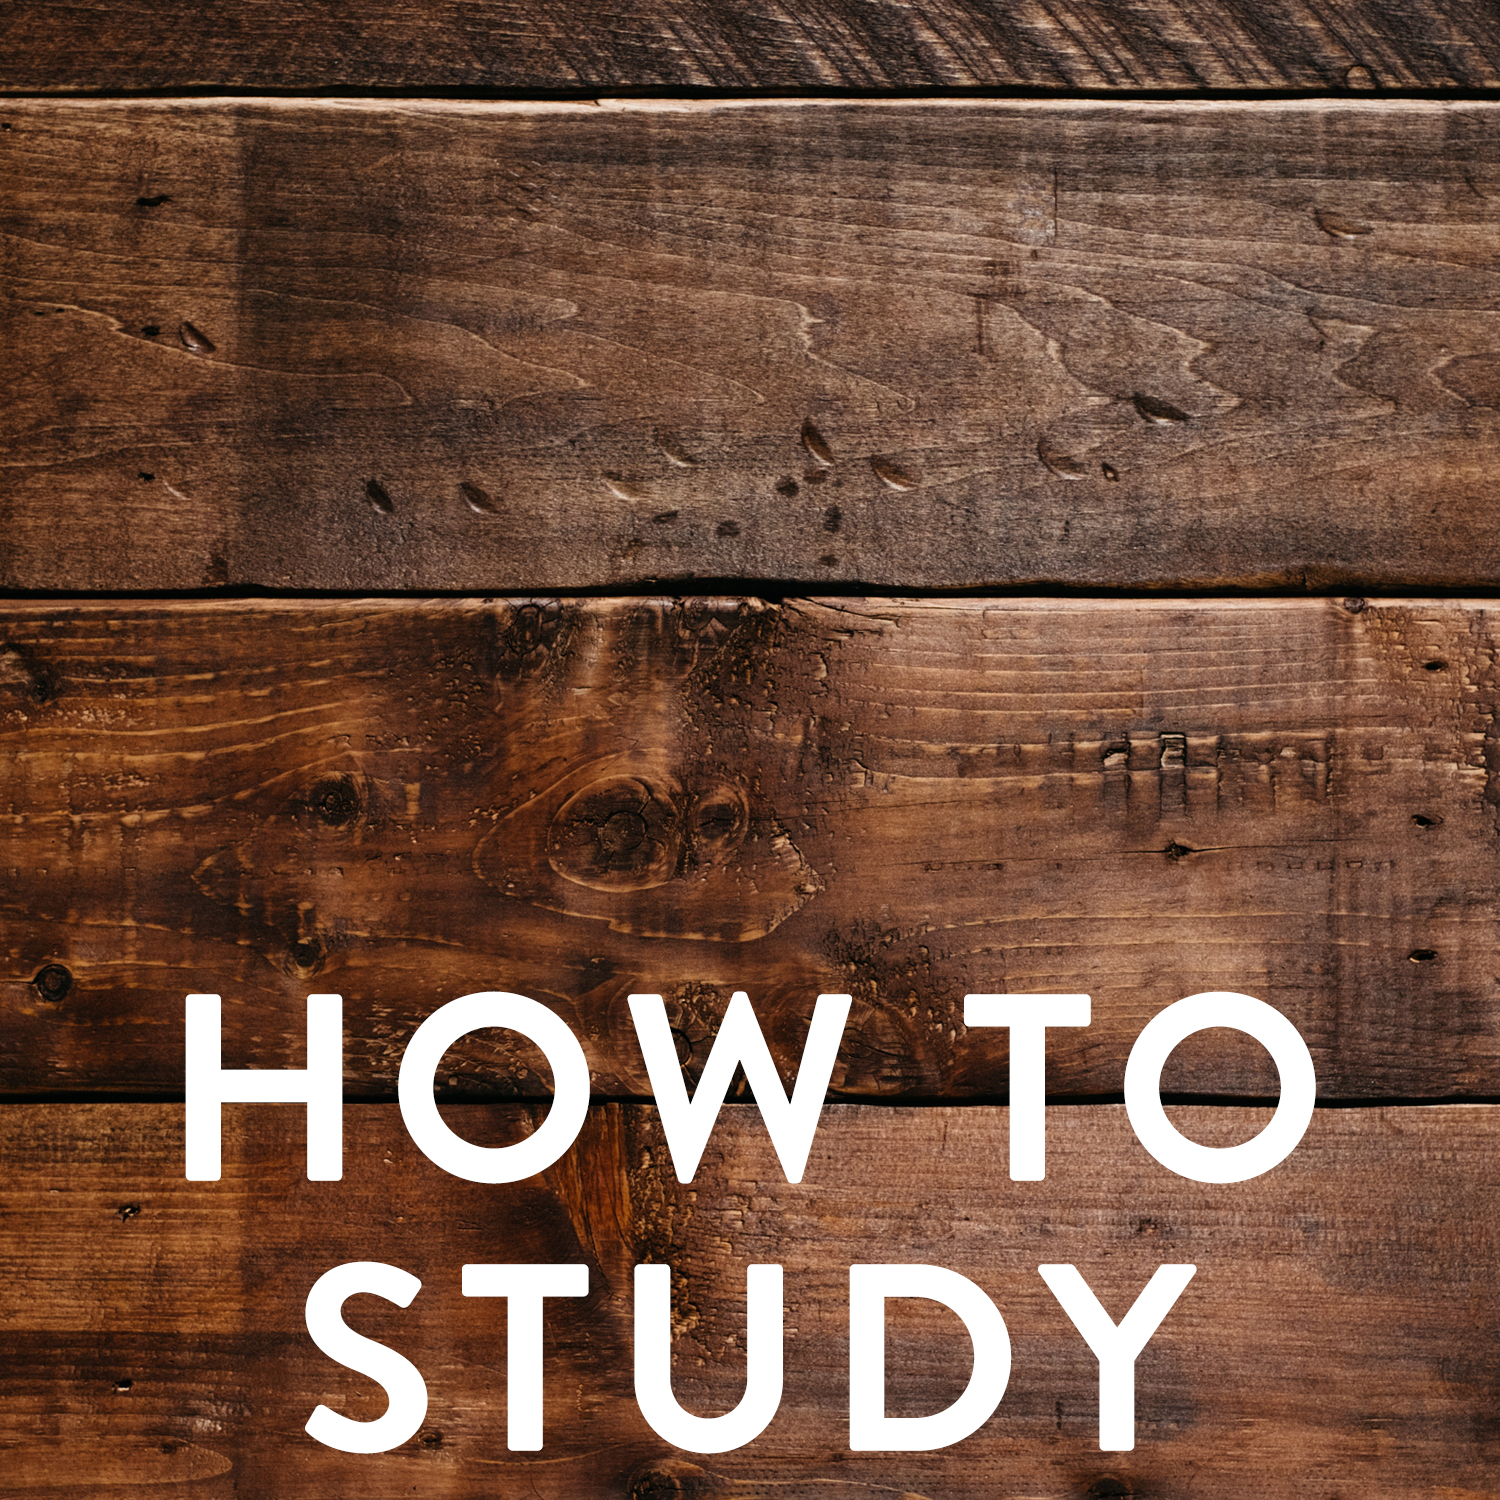 How to study